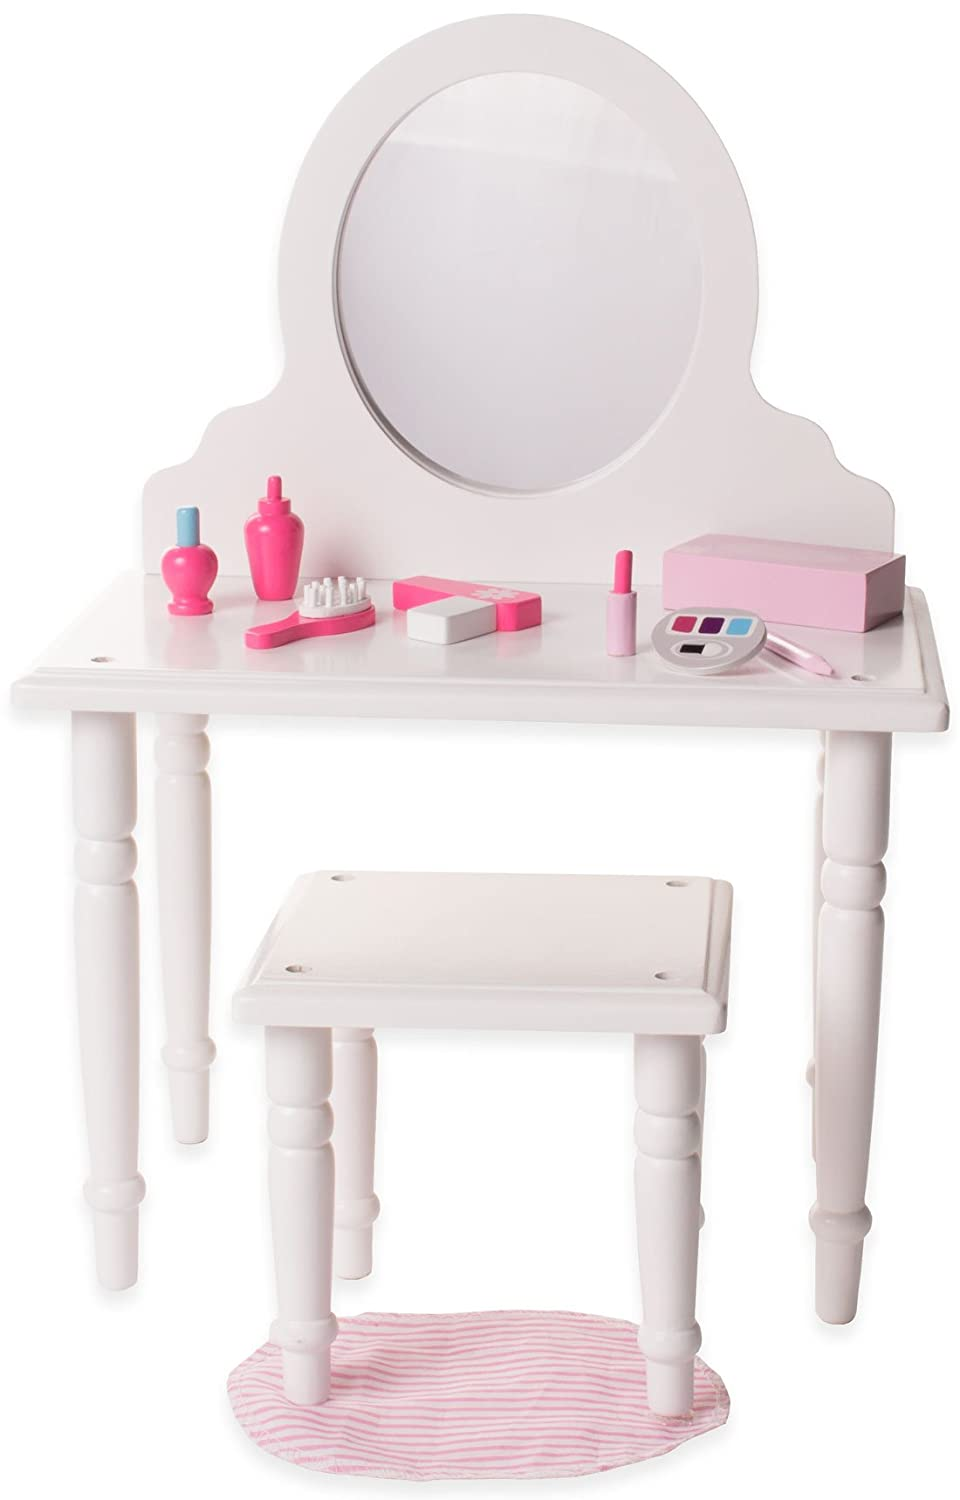 18 Inch Doll Vanity and Stool Set with Makeup Accessories- Playtime by Eimmie Collection